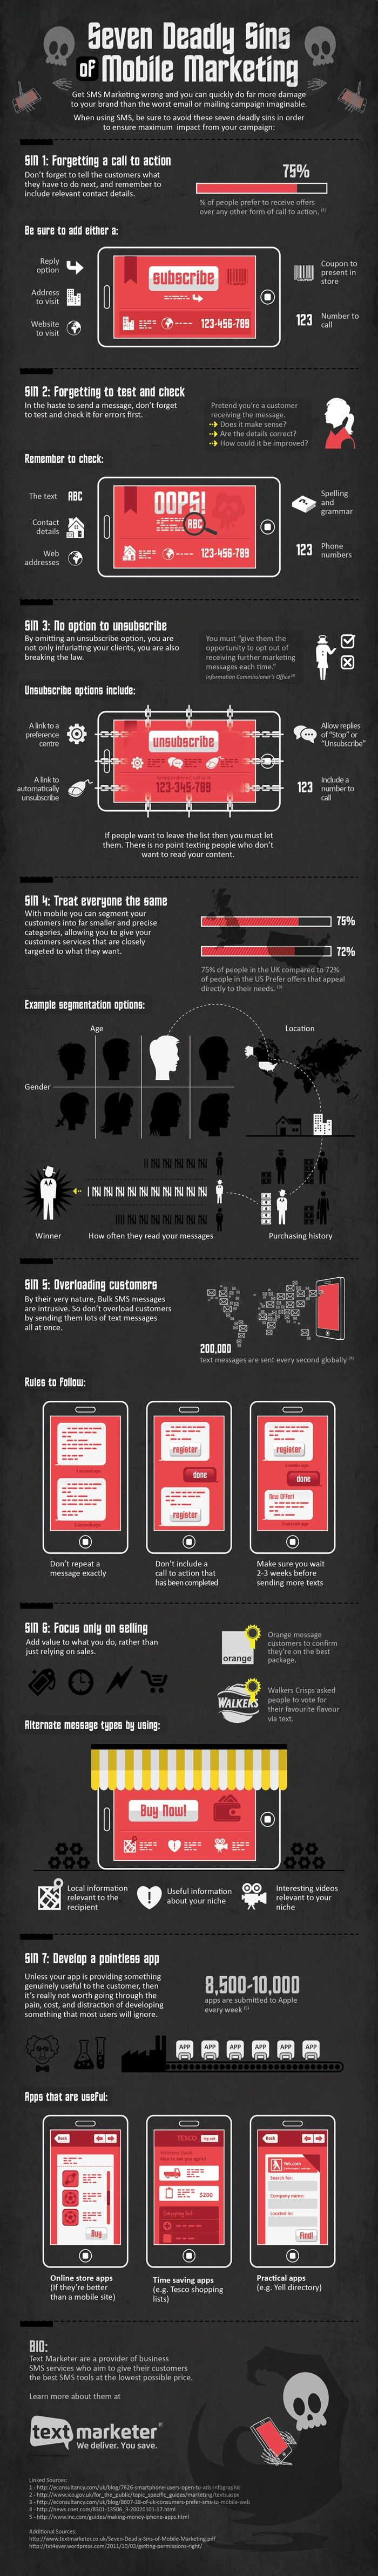 Mobile - Seven Deadly Sins of Mobile Marketing [Infographic] : MarketingProfs Article  (Great Article, I wish I could have taken credit for creating it.)  Thanks MarketingProfs!